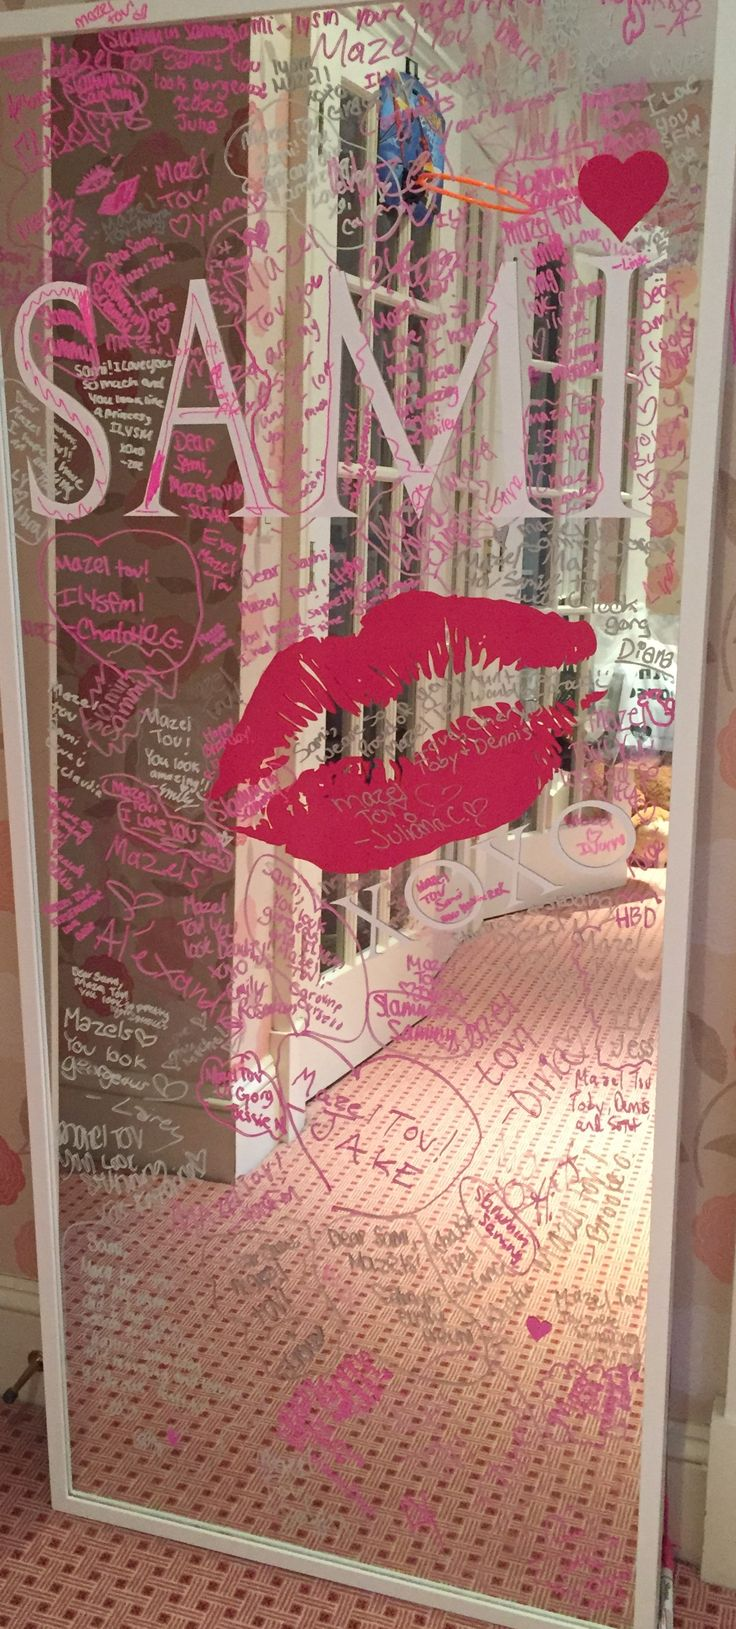 Made this sign in board for my daughters Bat Mitzvah. IKEA mirror, custom vinyl lettering and paint pens - an easy DIY idea.